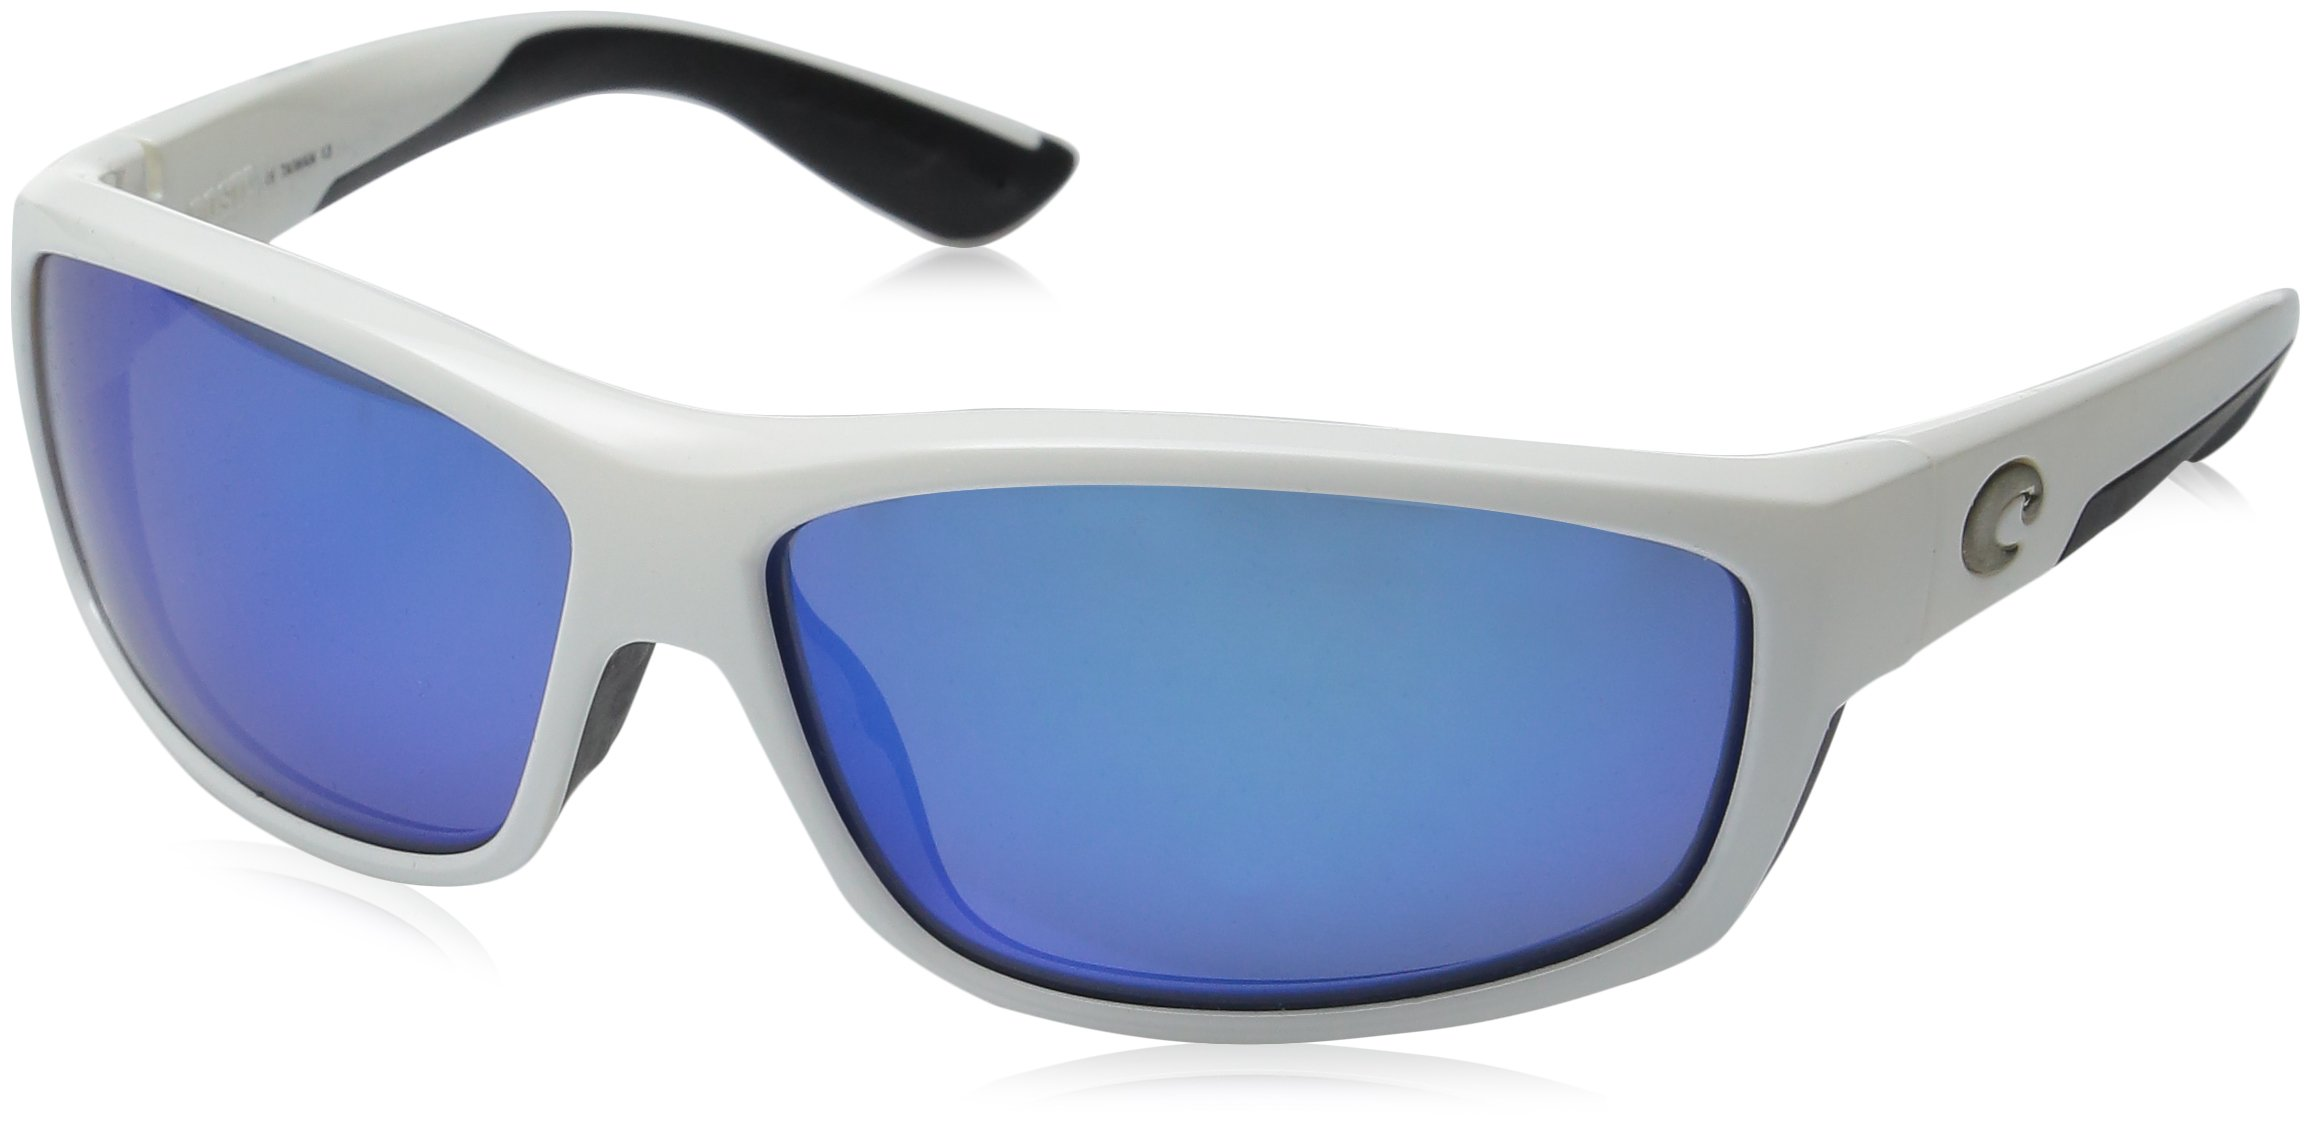 costa del mar saltbreak sunglasses by Costa Del Mar